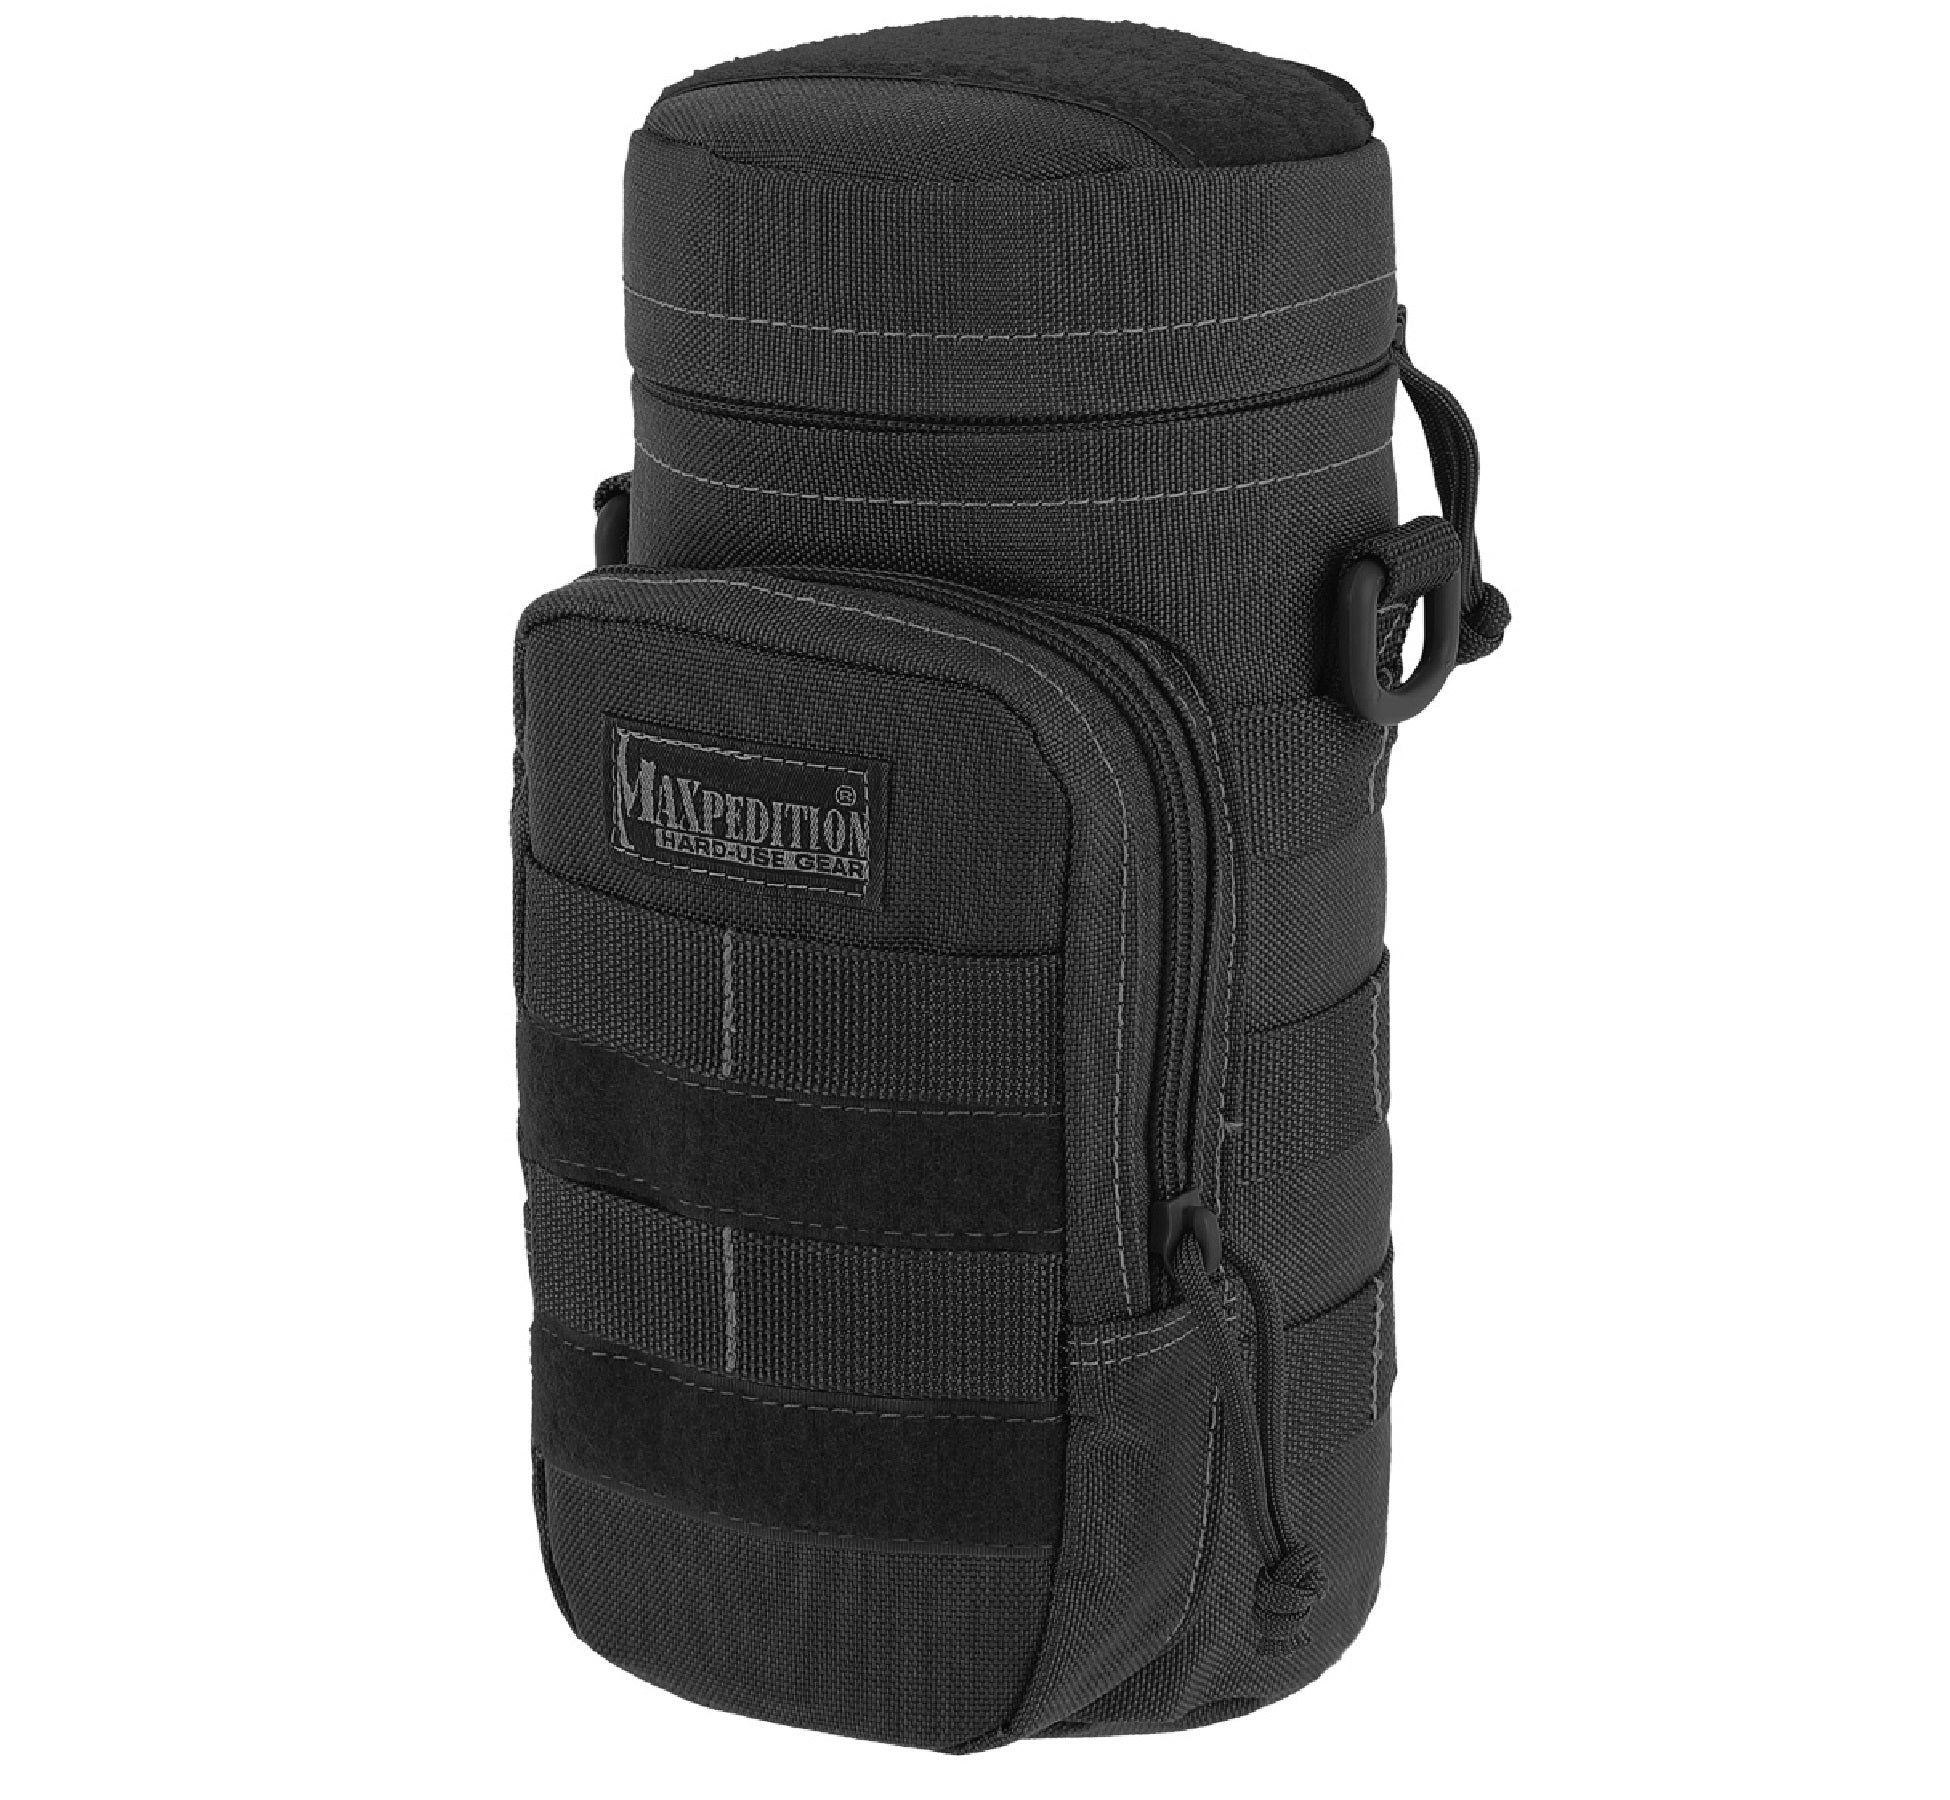 Maxpedition Bottle Holder 10.0 x 4.0 in Black